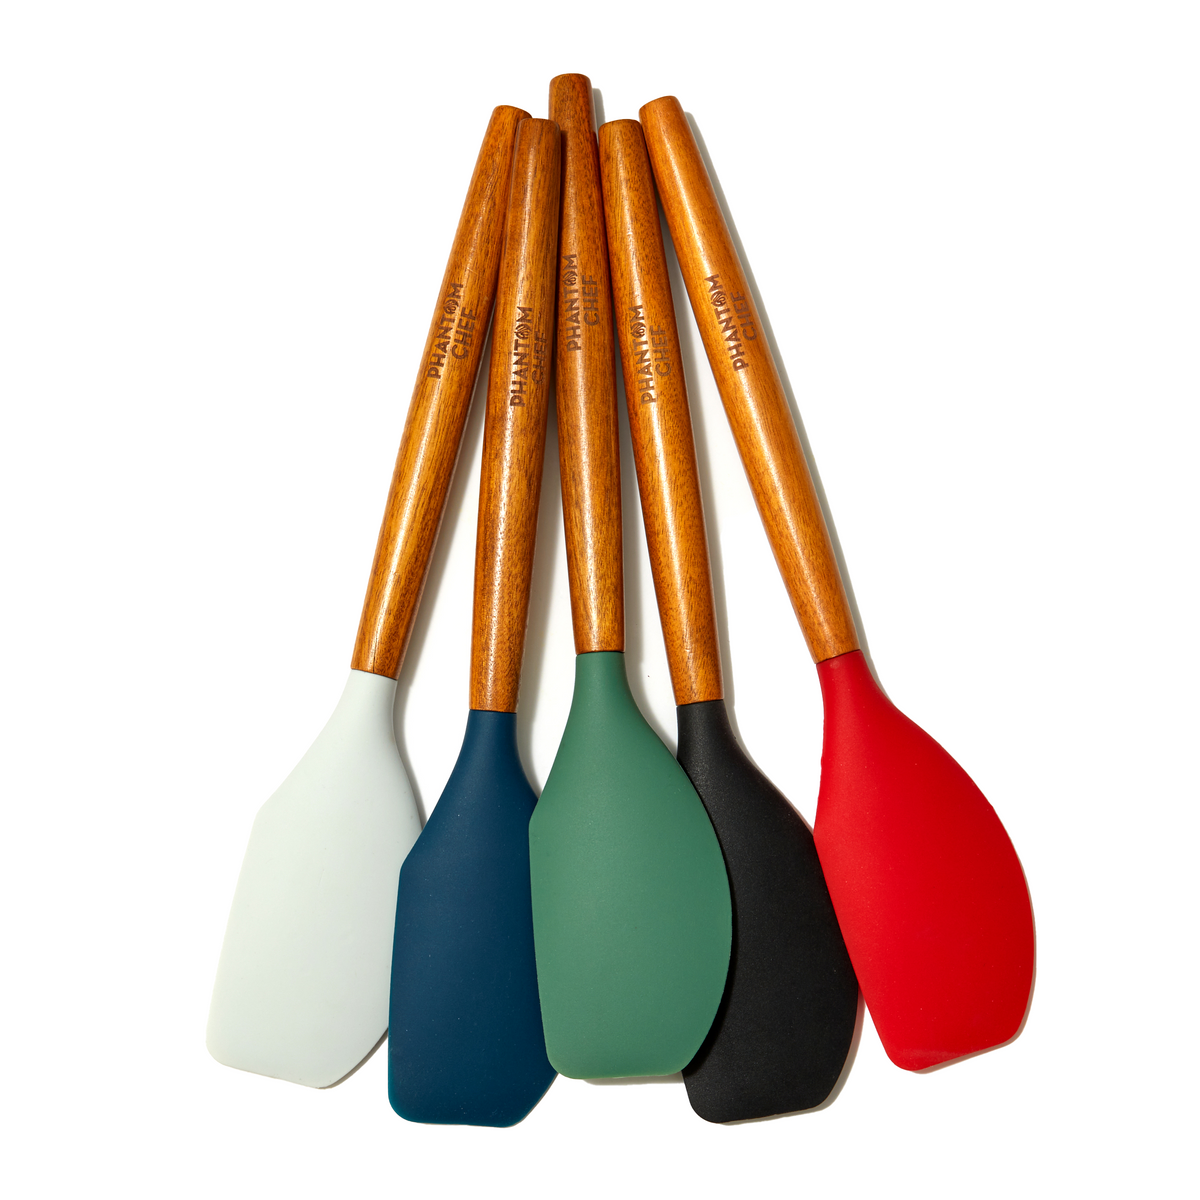 SPATULA - All Colors